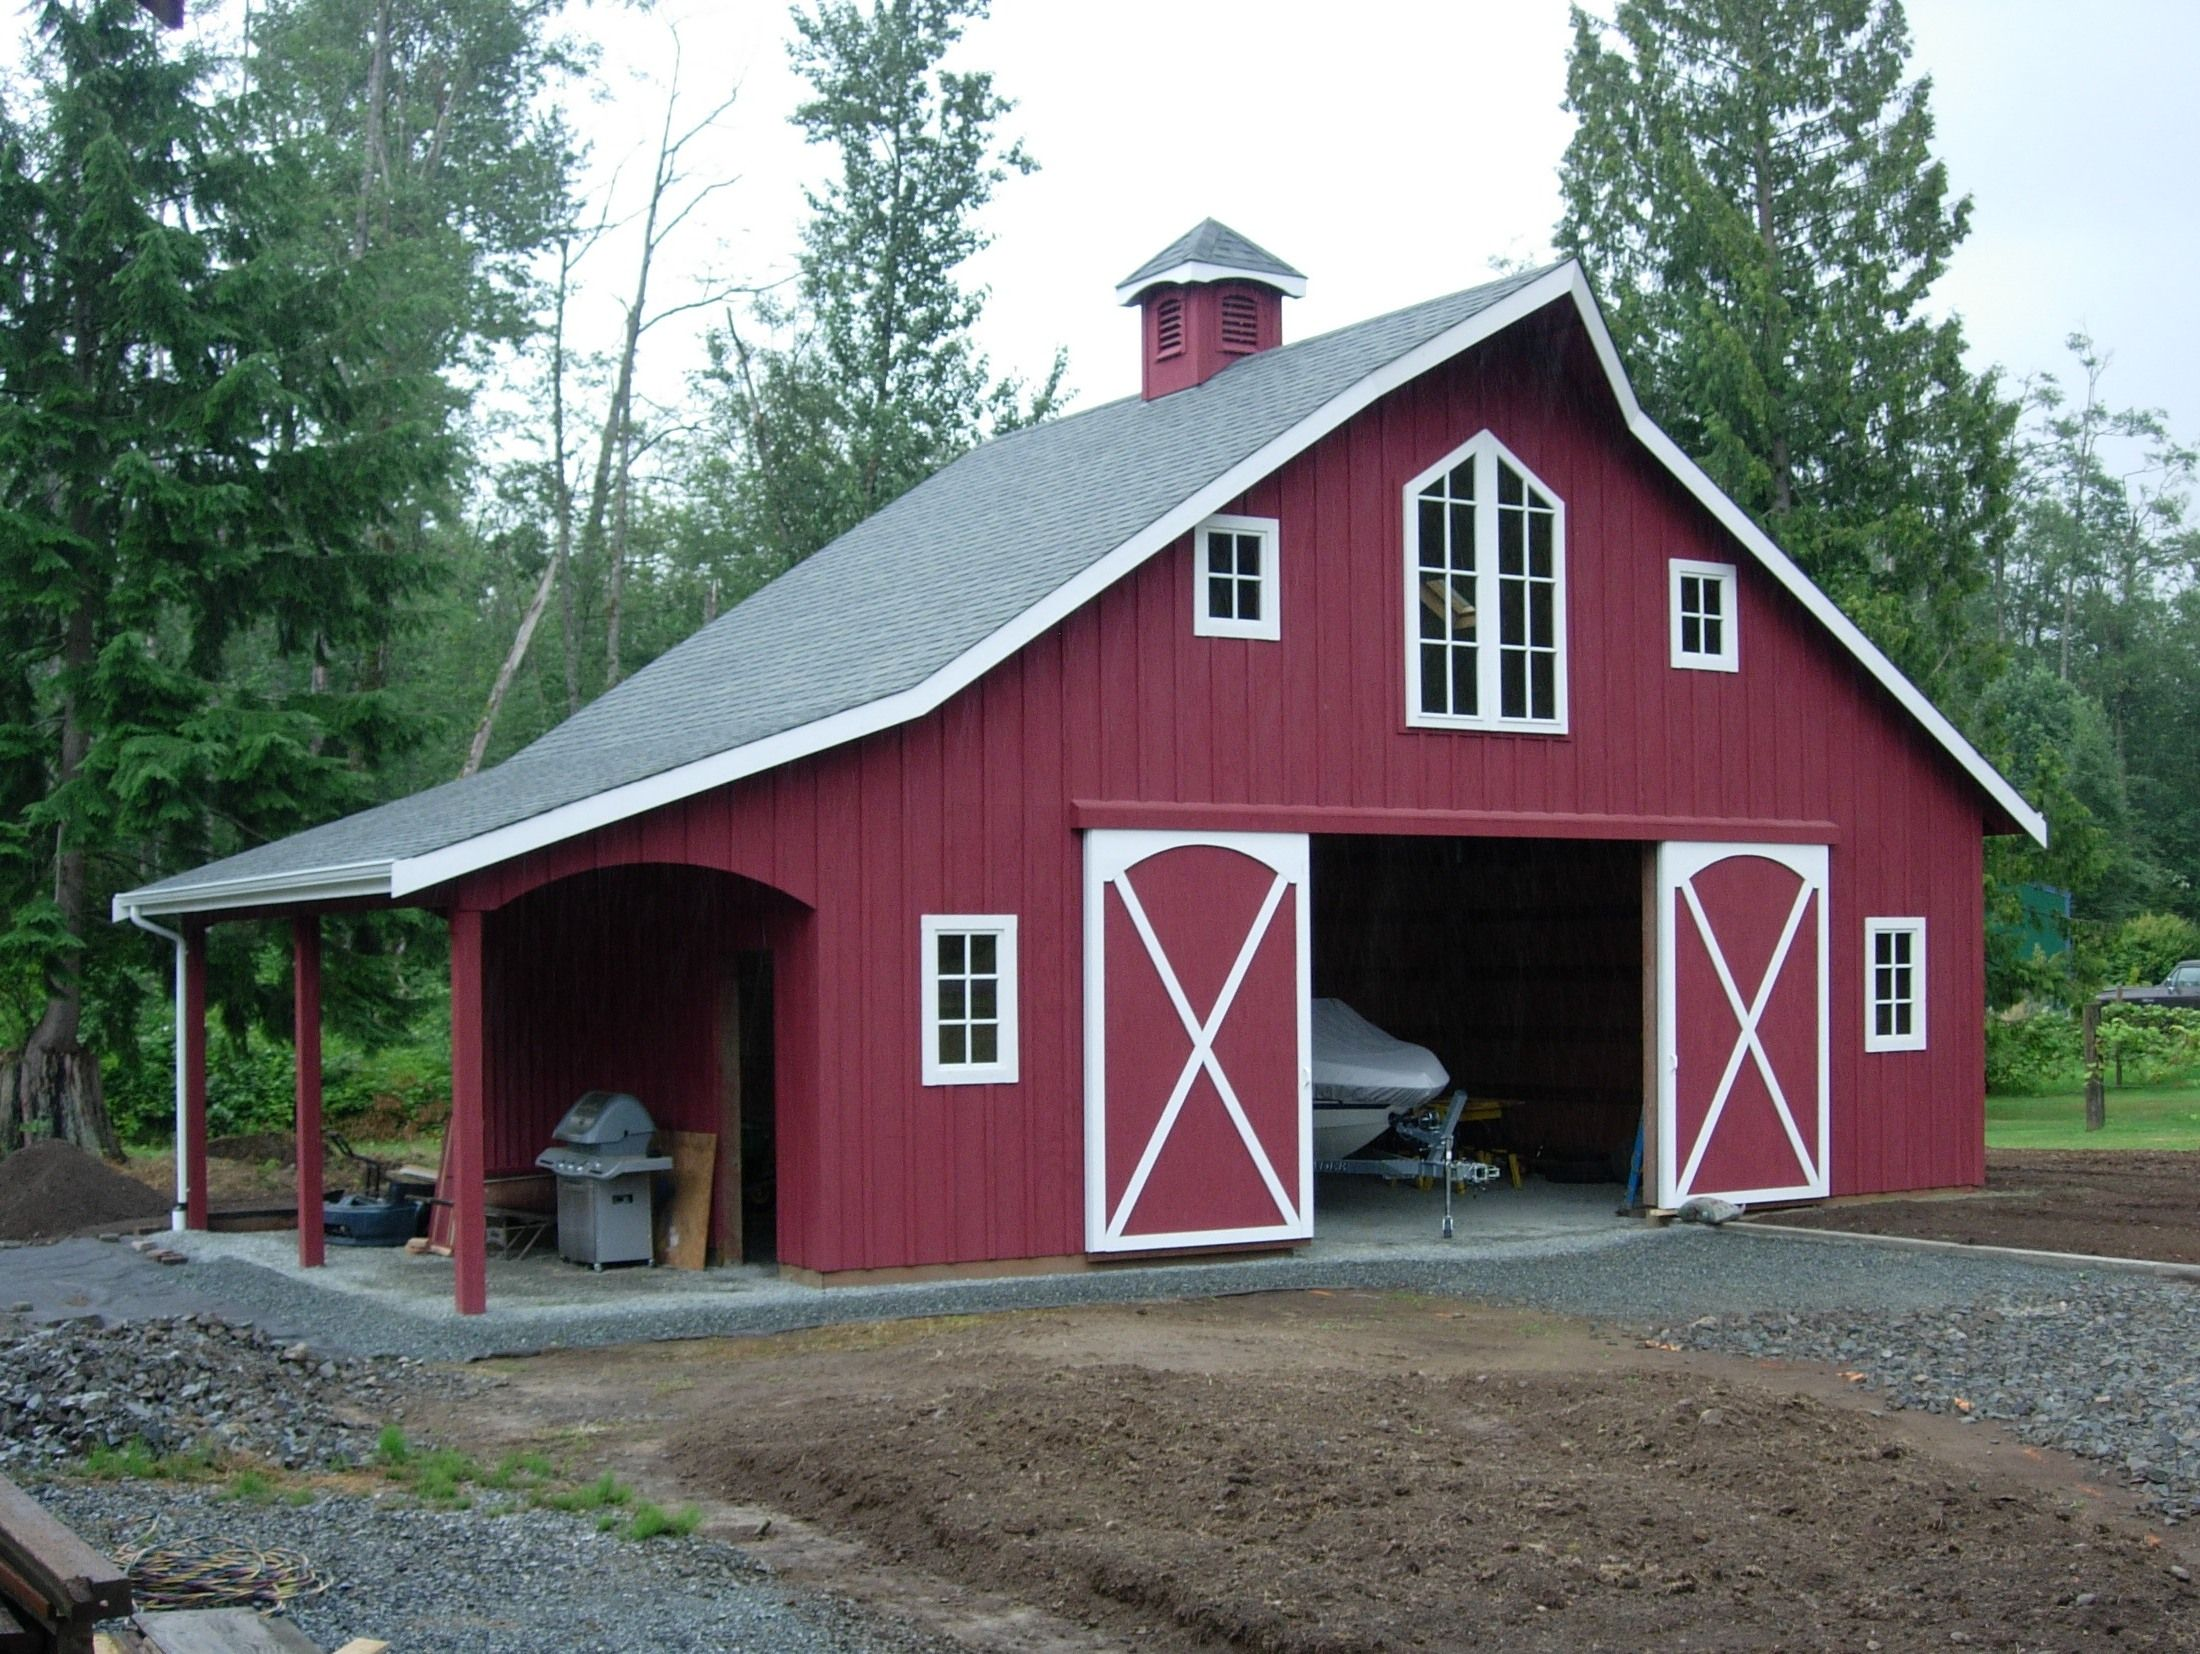 Barn Design More Horses Need A Parallel Stall Arrangement Barn